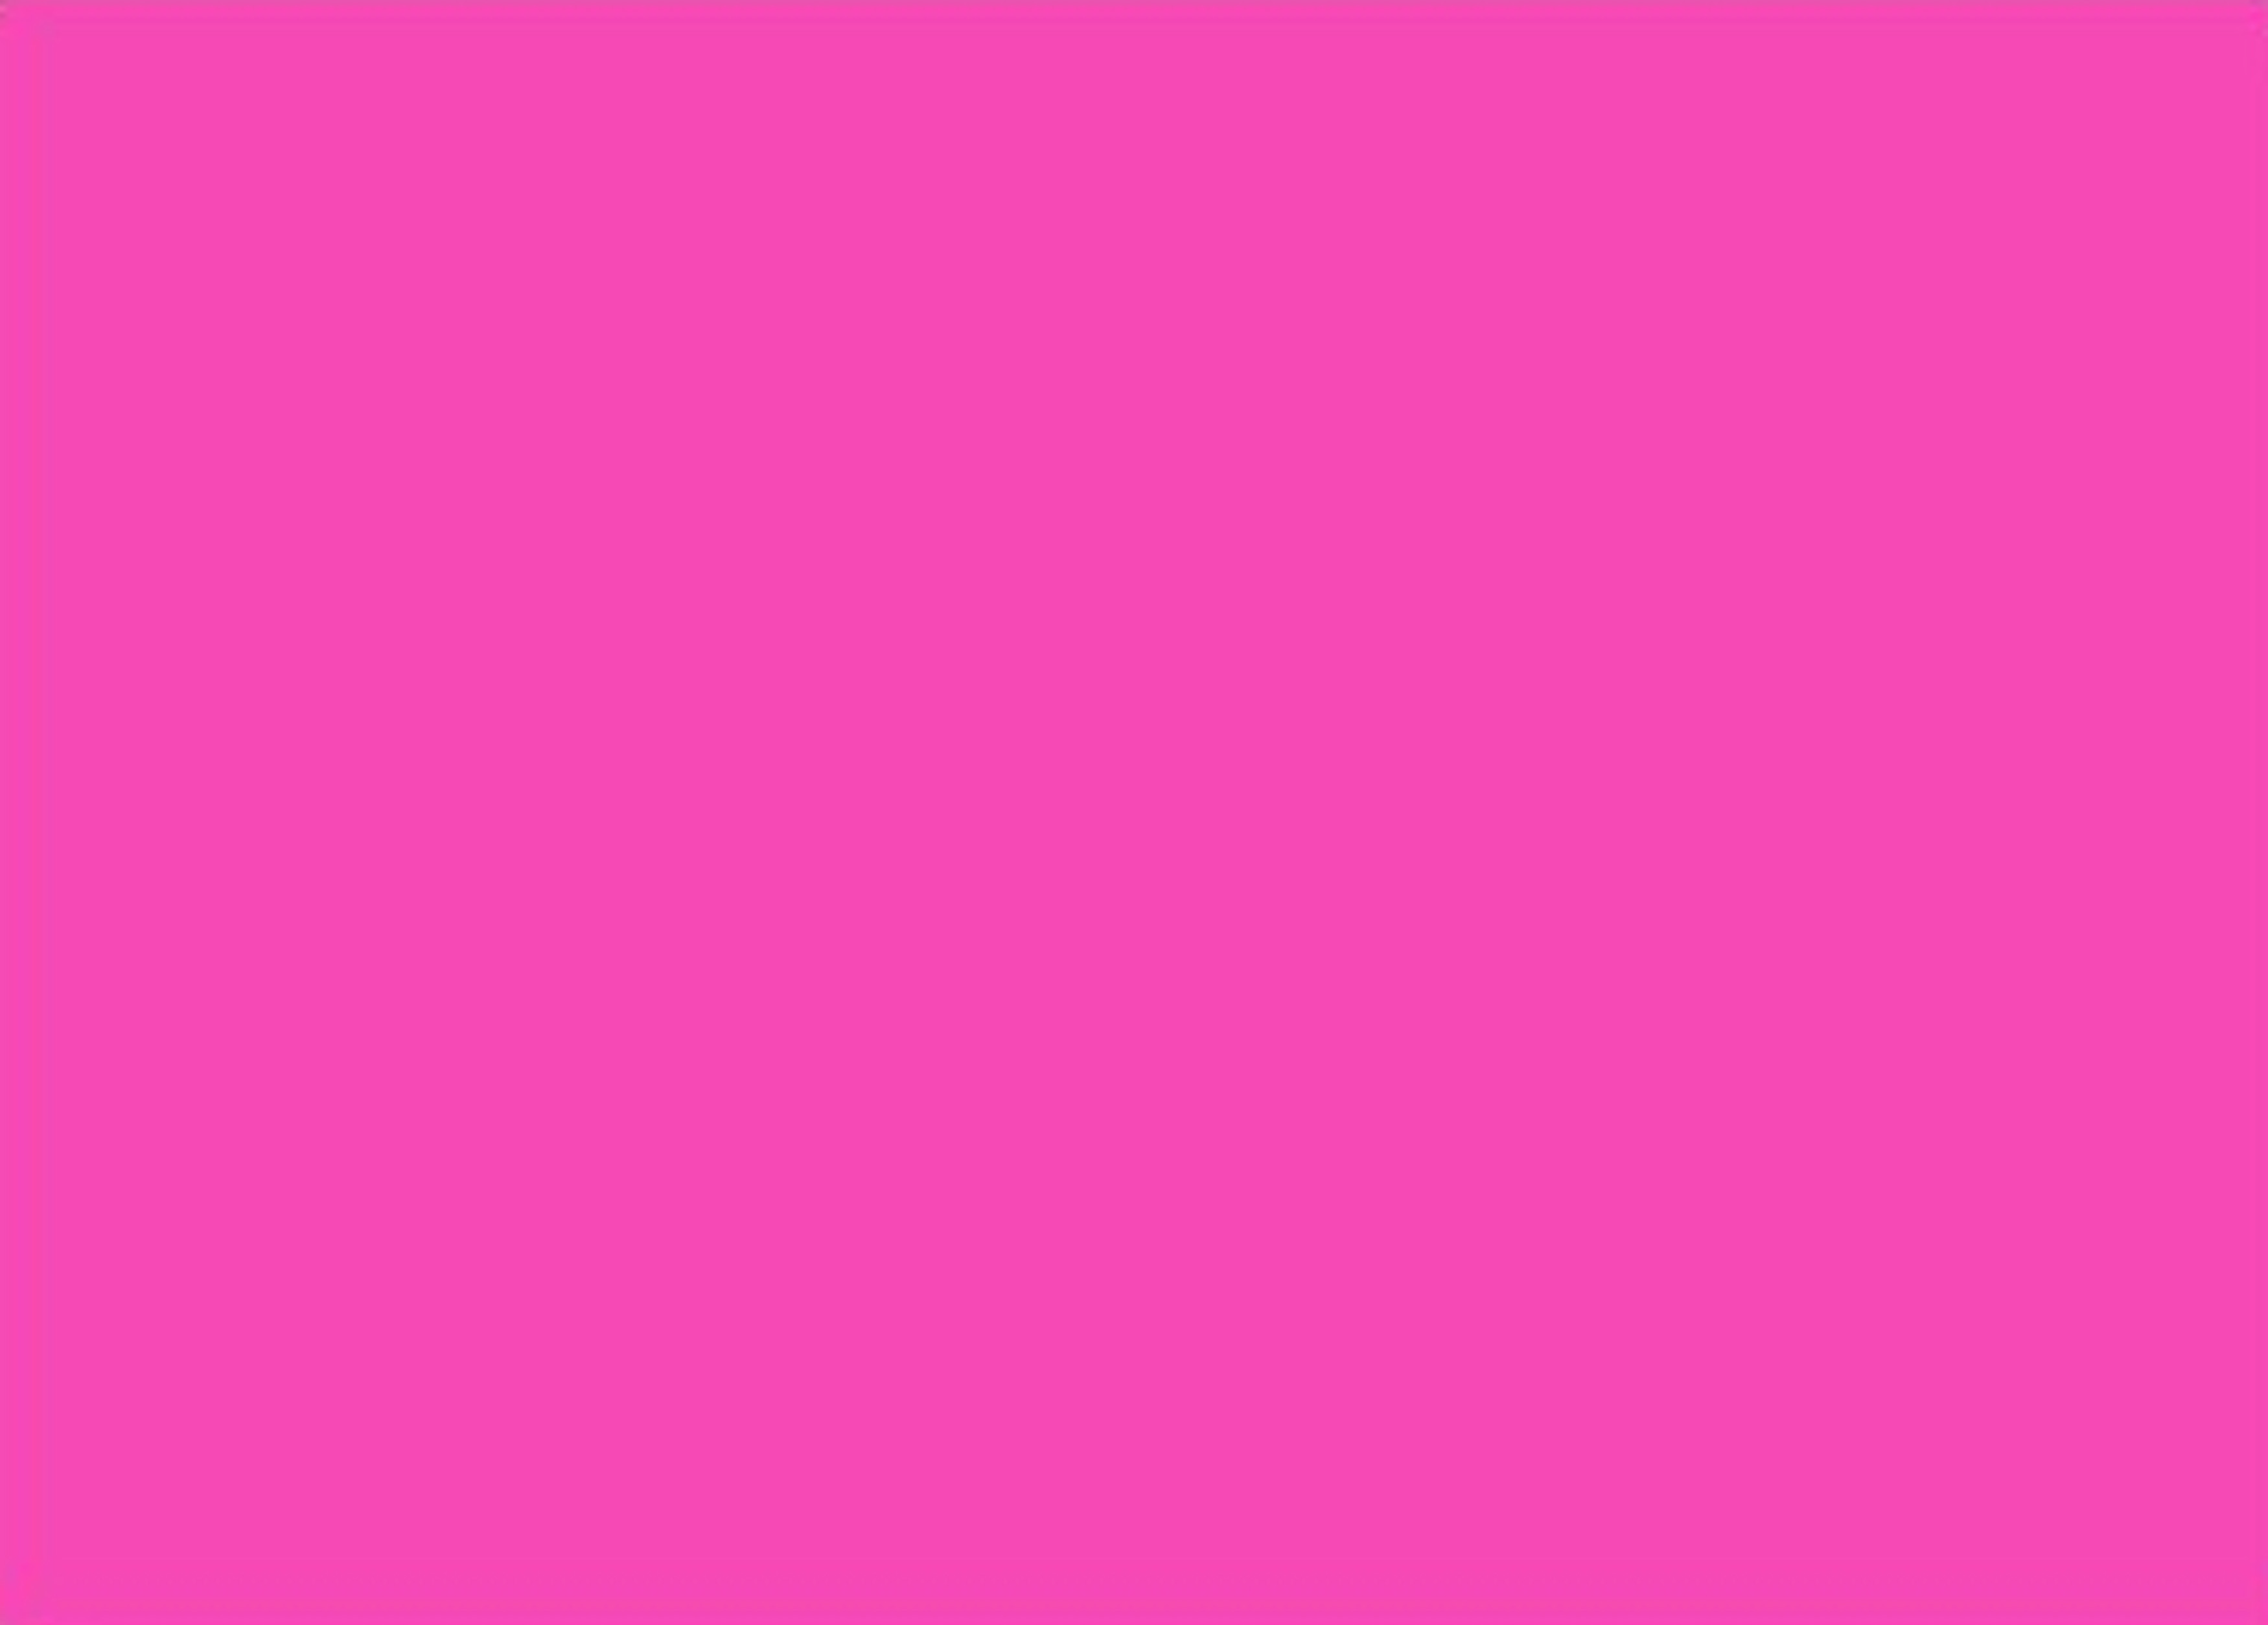 35 High Definition Pink Wallpapers Backgrounds For Free: Plain Pink Wallpaper